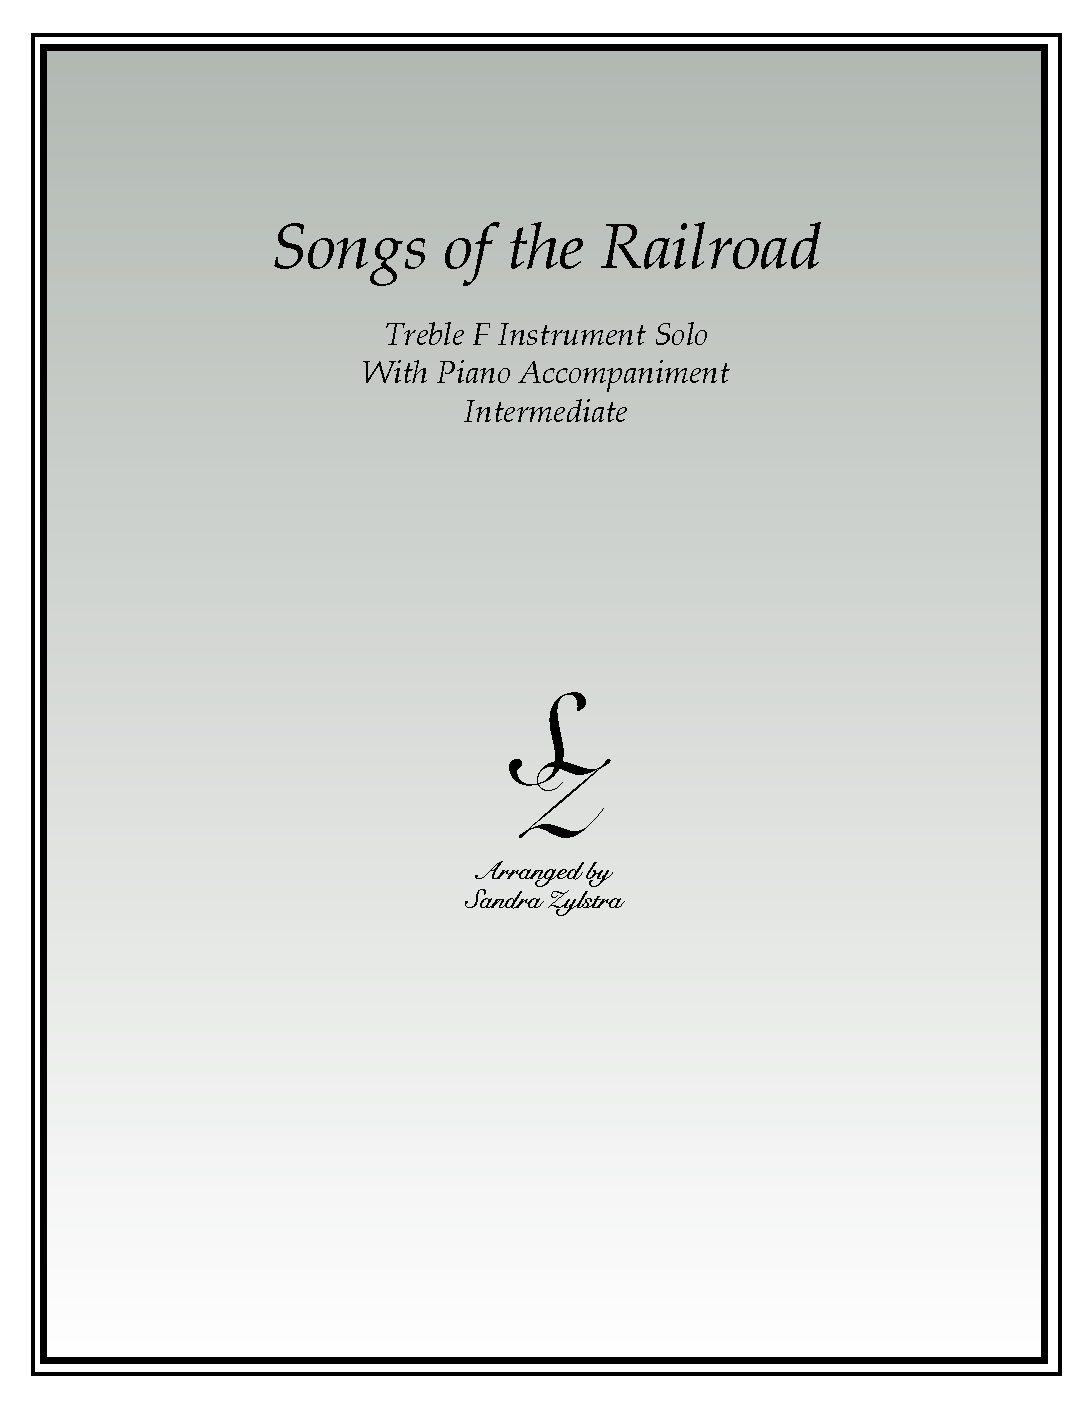 Songs Of The Railroad -Treble F Instrument Solo